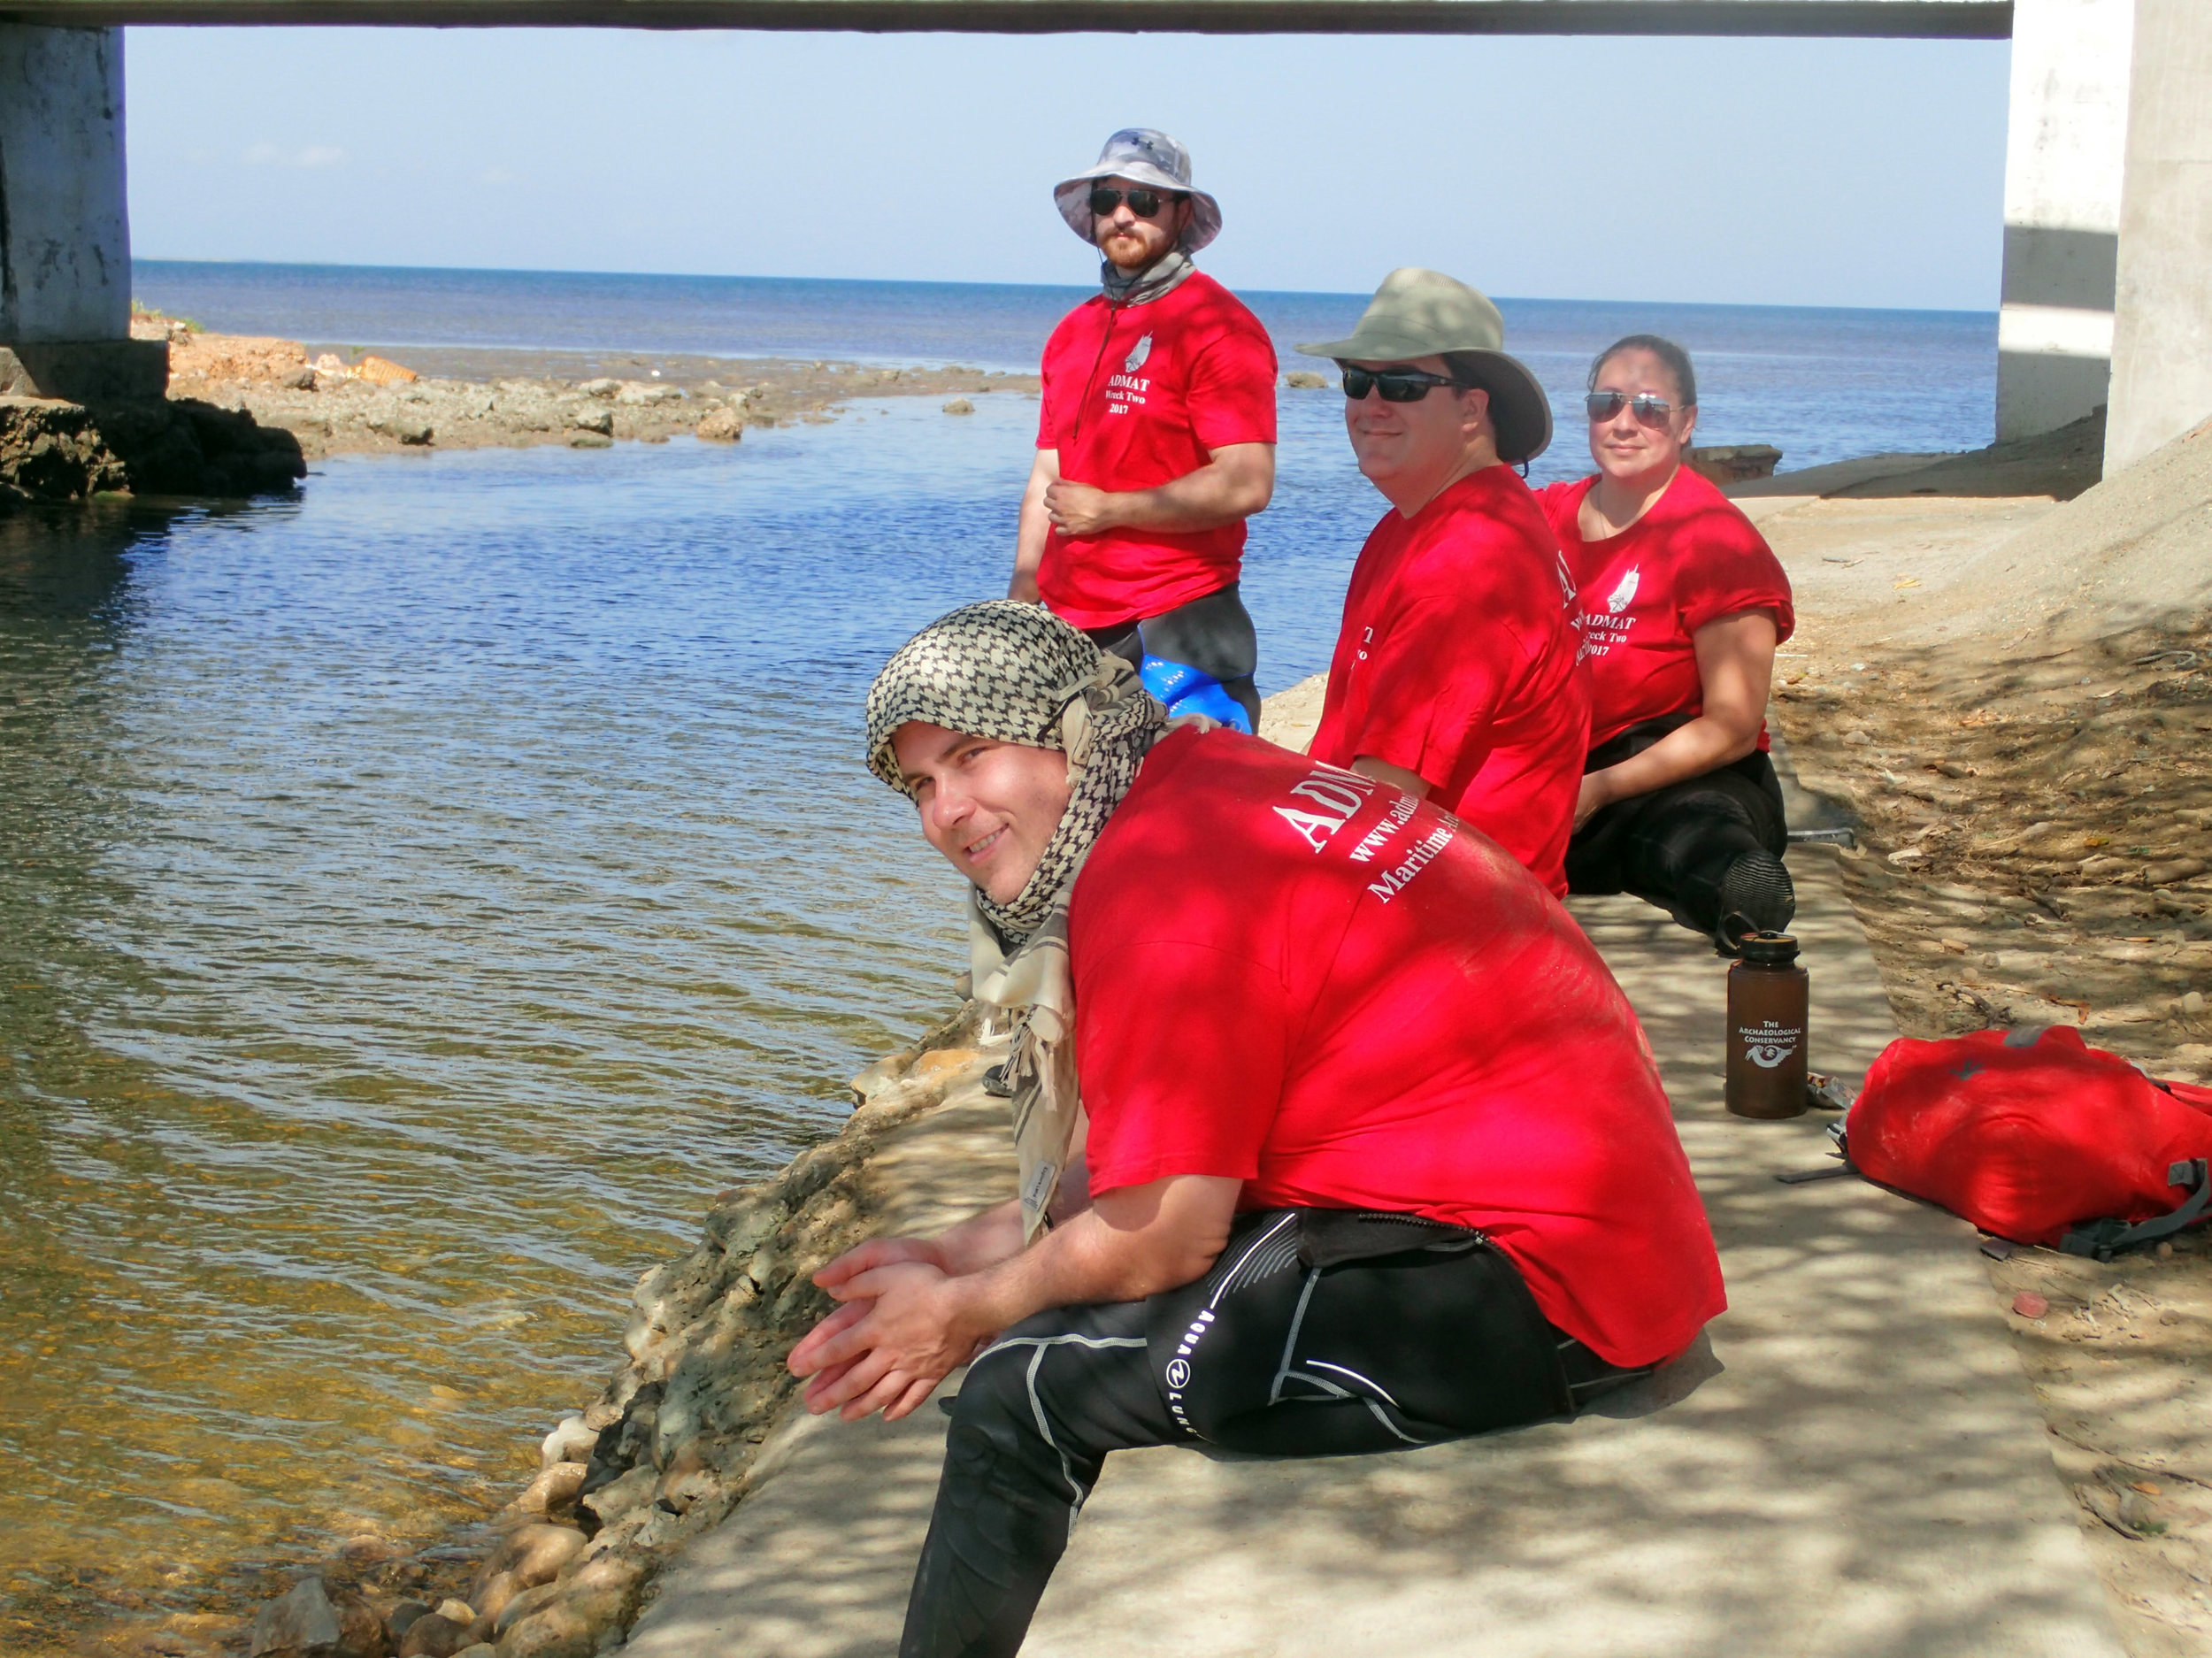 Stephen and Team waiting for the boat to go to the site in Monte Cristi